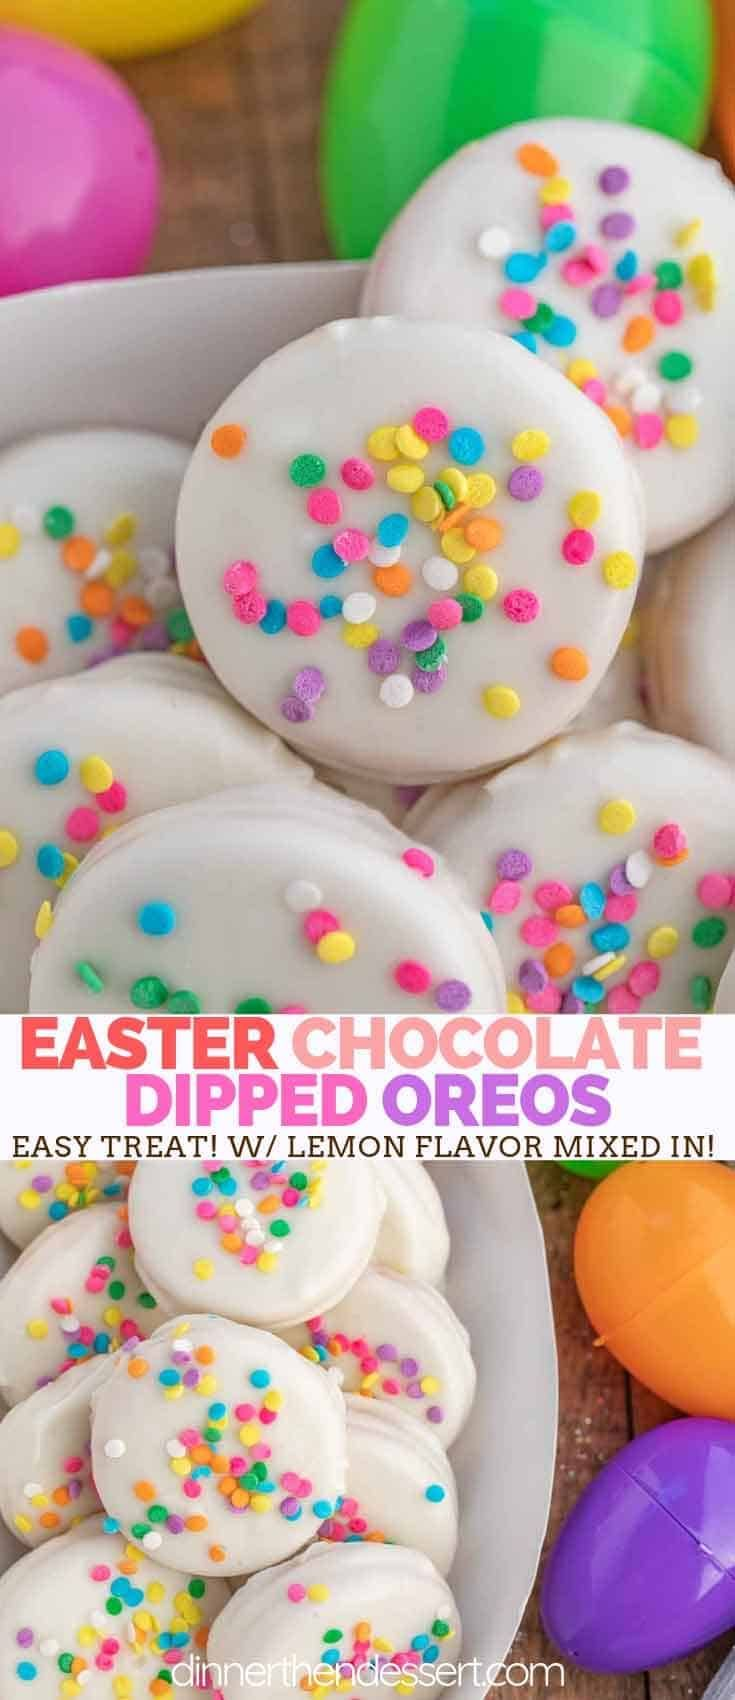 Easter Egg Chocolate Oreos made with Lemon Oreos dipped in white chocolate flavored with lemon extract and decorated with spring themed sprinkles for a fun Easter and spring themed treat!